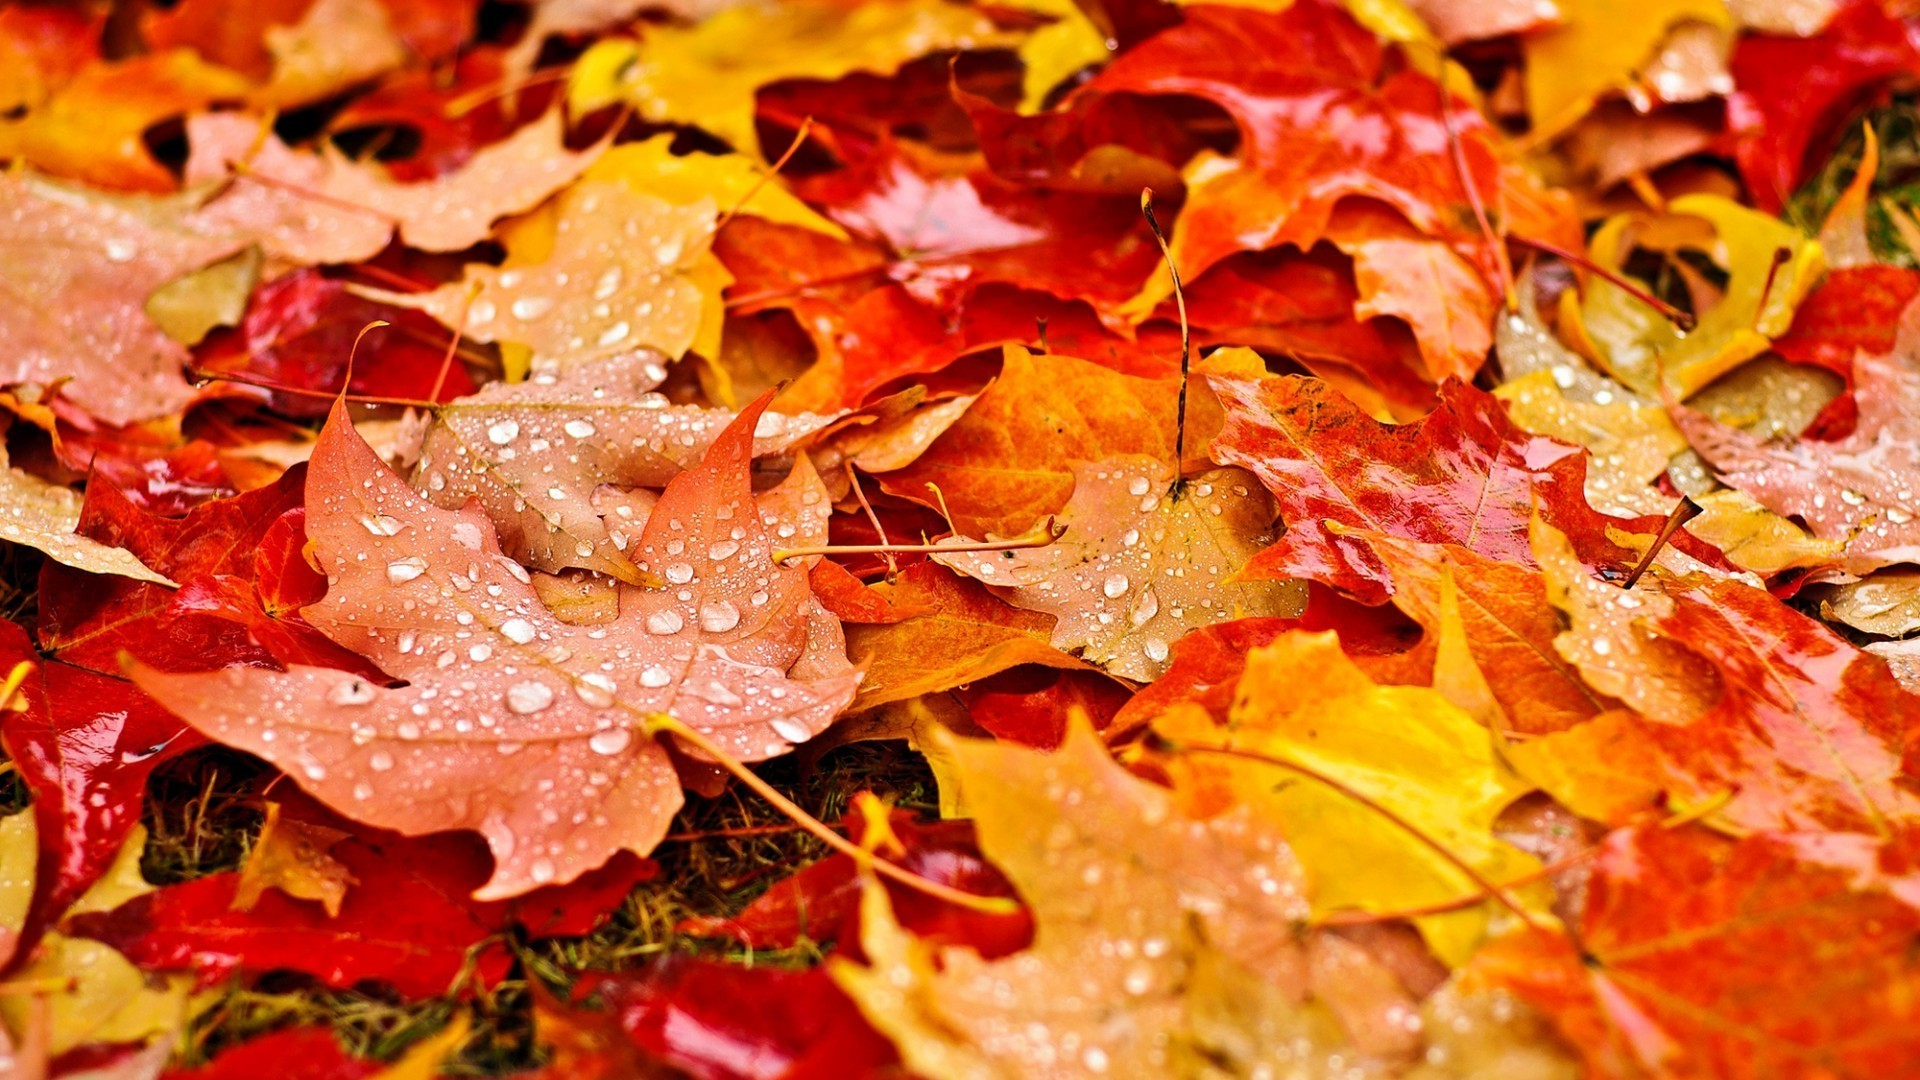 Fall Leaves Fox Wallpaper Fall Wallpaper Backgrounds With Pumpkins 55 Images